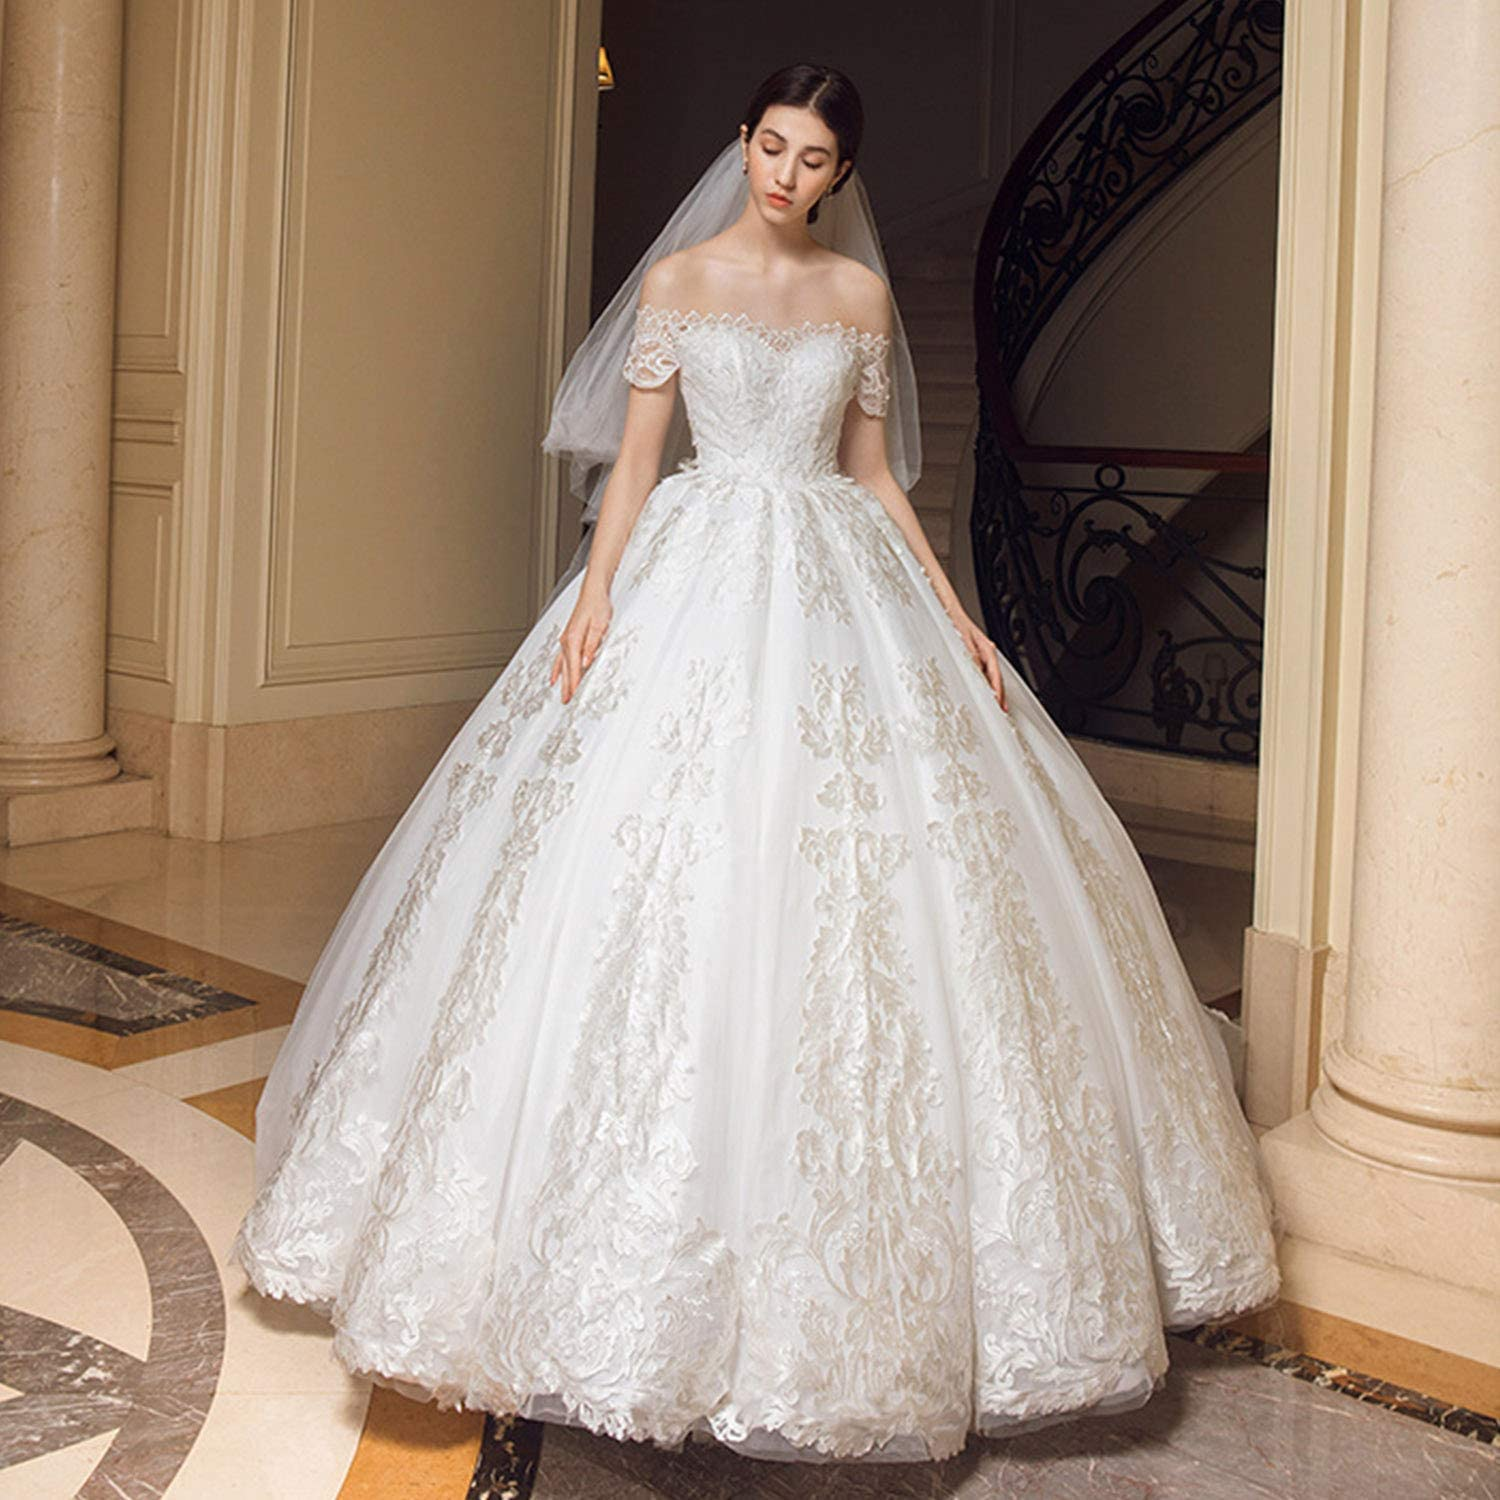 Women's Wedding Dresses Elegant Simple Oversized Backless Floor Length Bridal Dresses Ideal for Ceremony Evening Party Use,Ladies Girls Gift